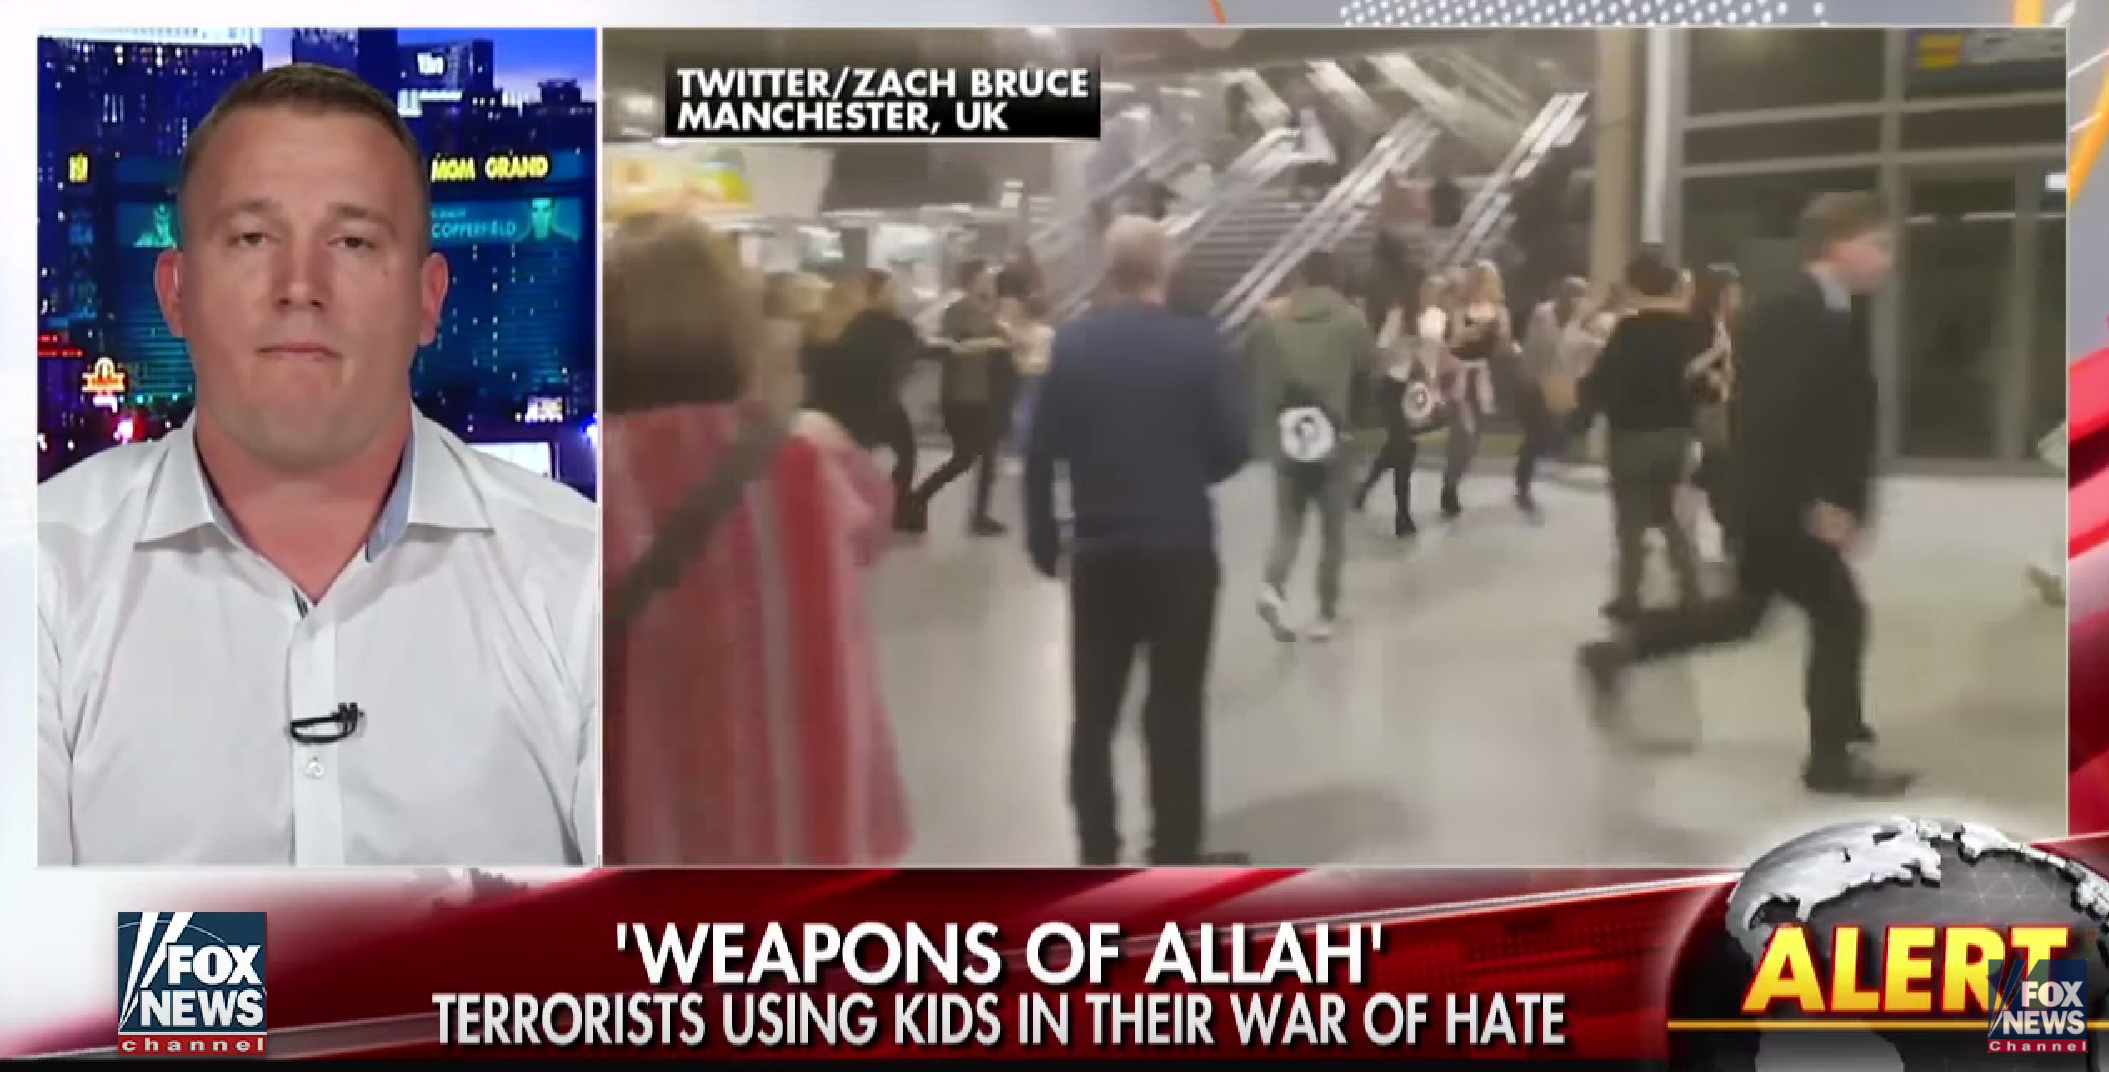 Medal Of Honor Recipient Dakota Meyer: 'Release The Gates Of Hell' On ISIS (Video)